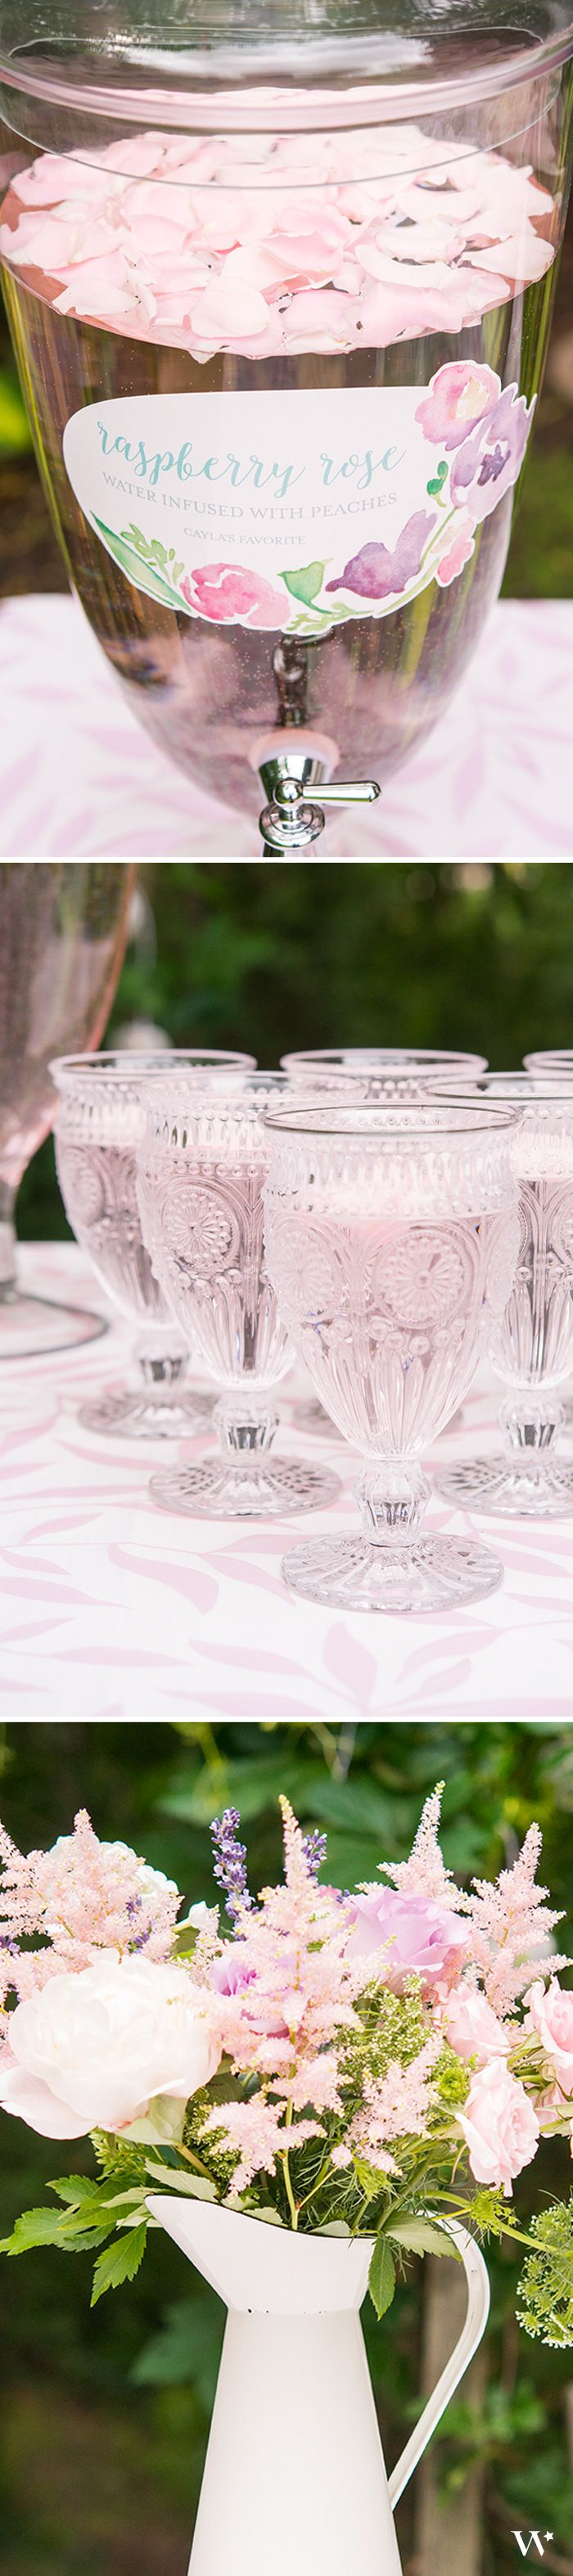 Serve guests their drinks in style with this decorative Apothecary style dispenser and vintage inspired pressed glass goblets in blush pink. Perfect for a Garden Party. Dress up your drink station with this enamel pitcher filled with beautiful flowers.